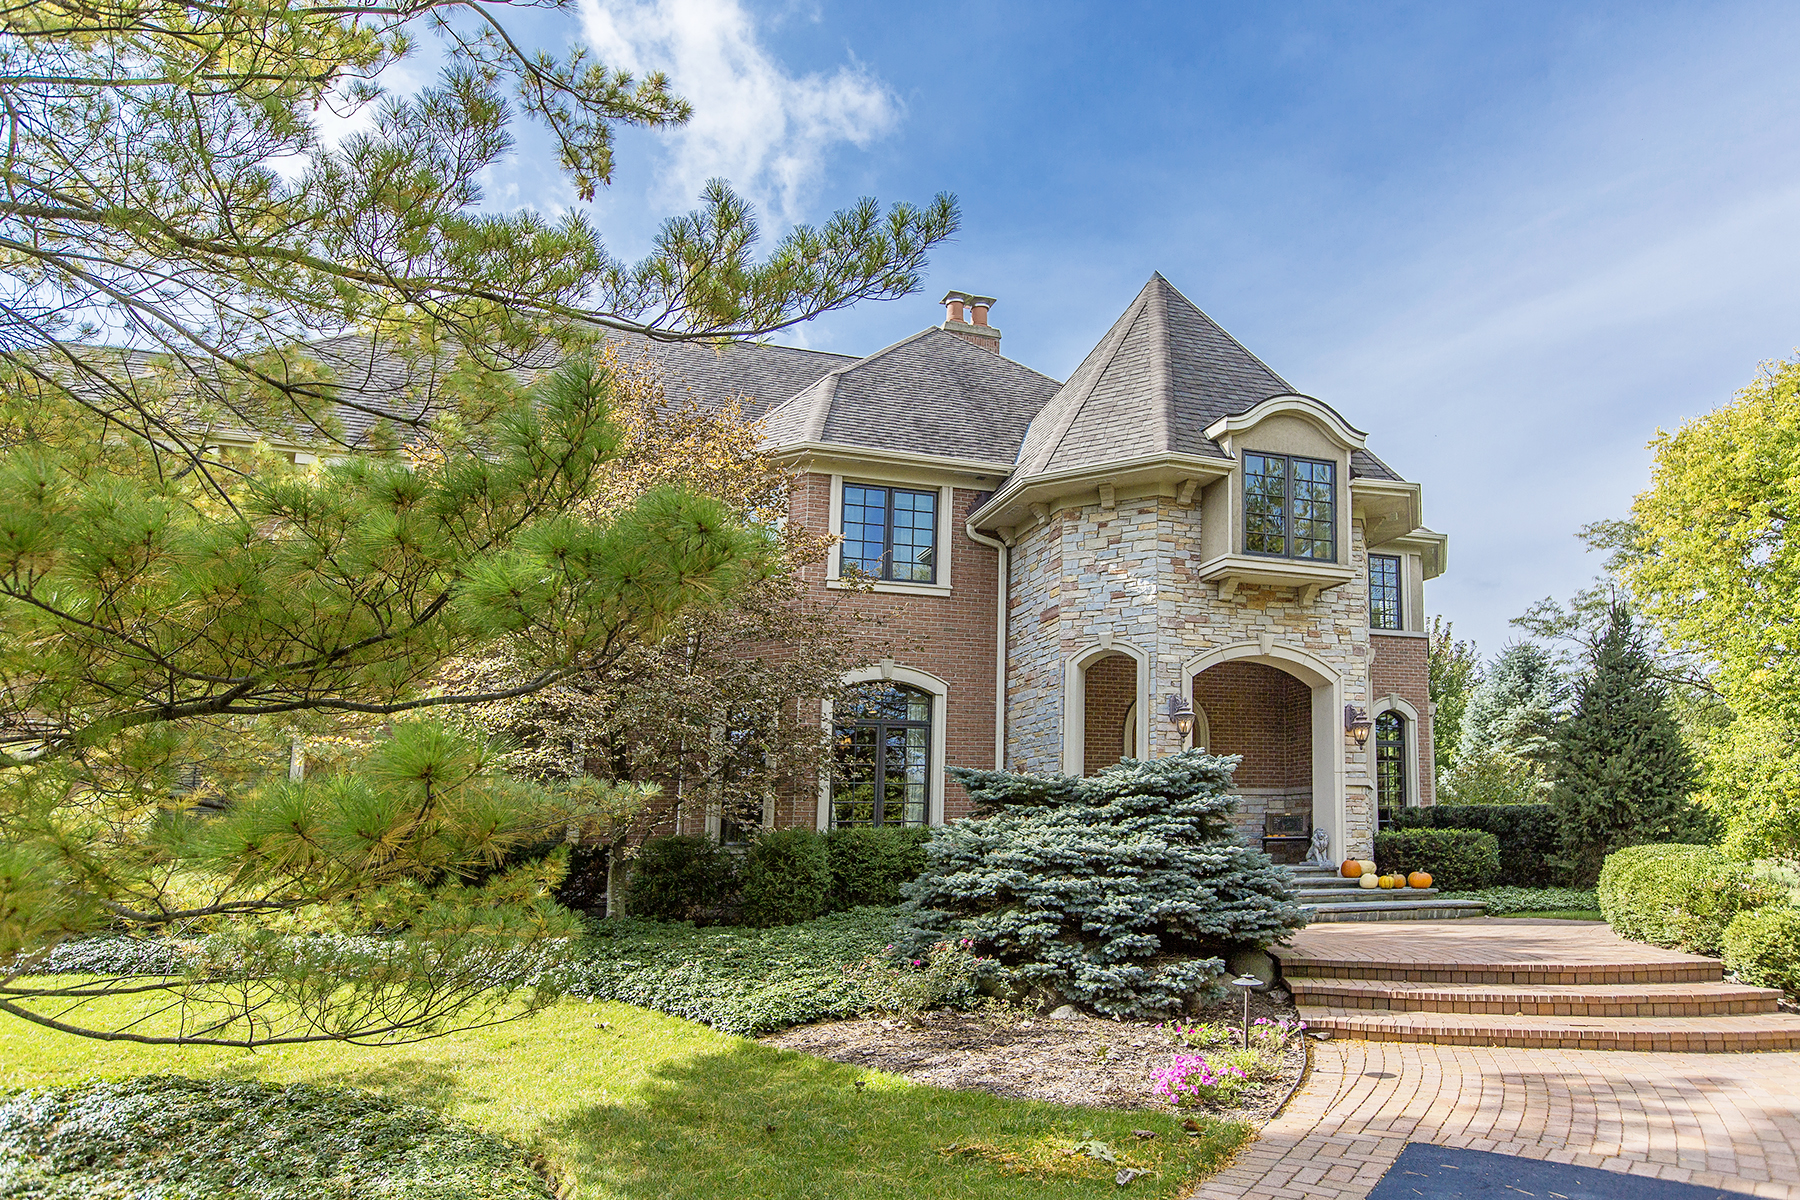 Single Family Home for Sale at The Estate at 16 Vandenbergh 16 Vandenbergh Drive South Barrington, Illinois, 60010 United States